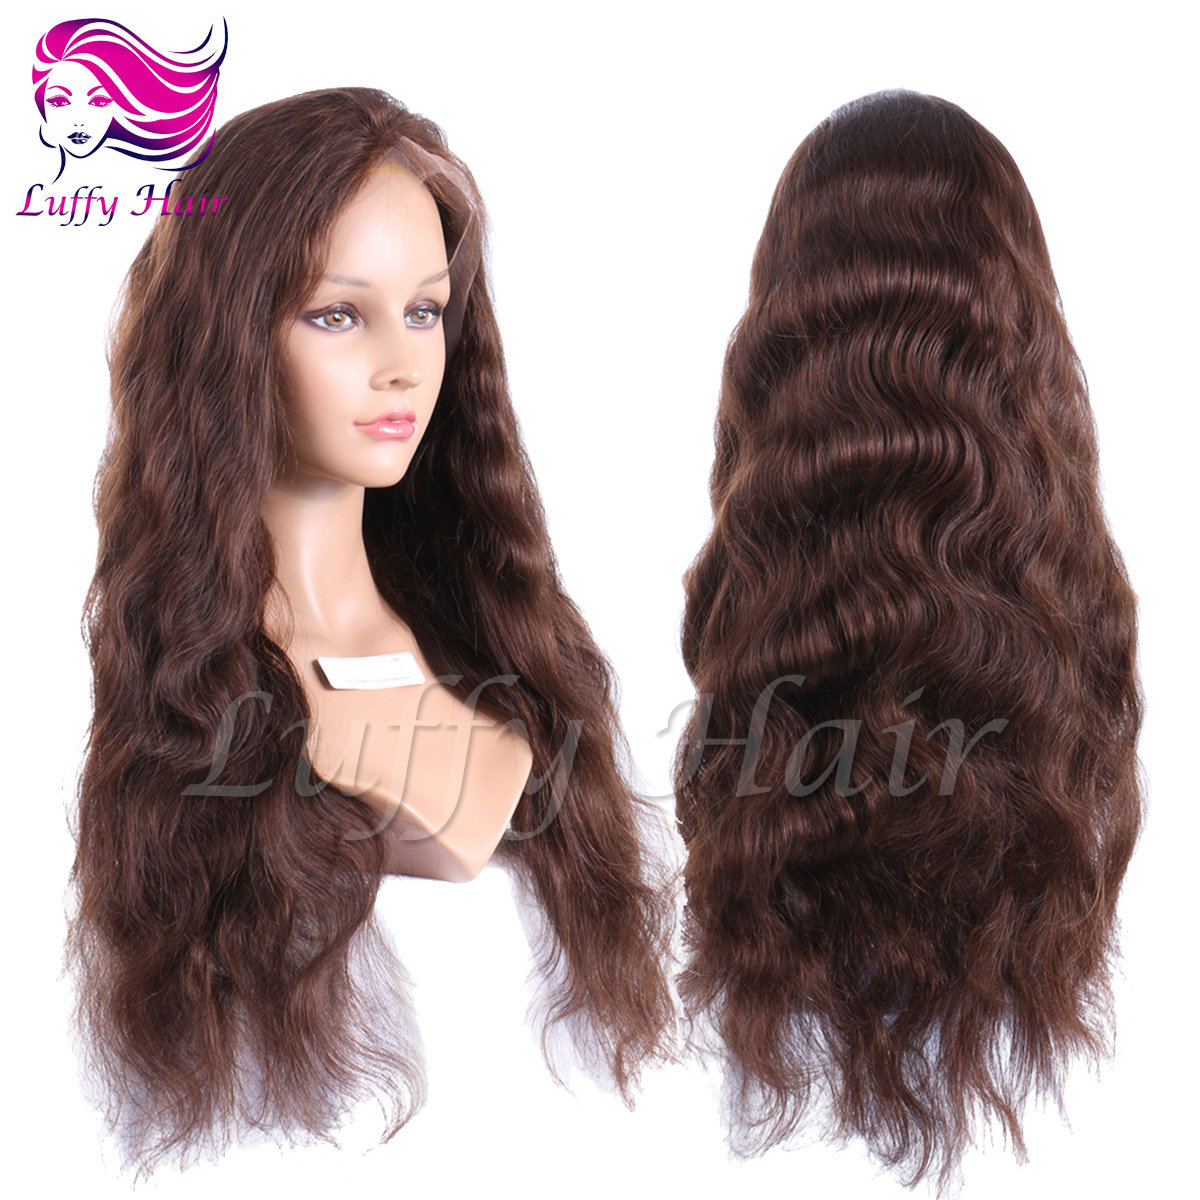 8A Virgin Human Hair Color #4 Natural Wave Wig - KWL060